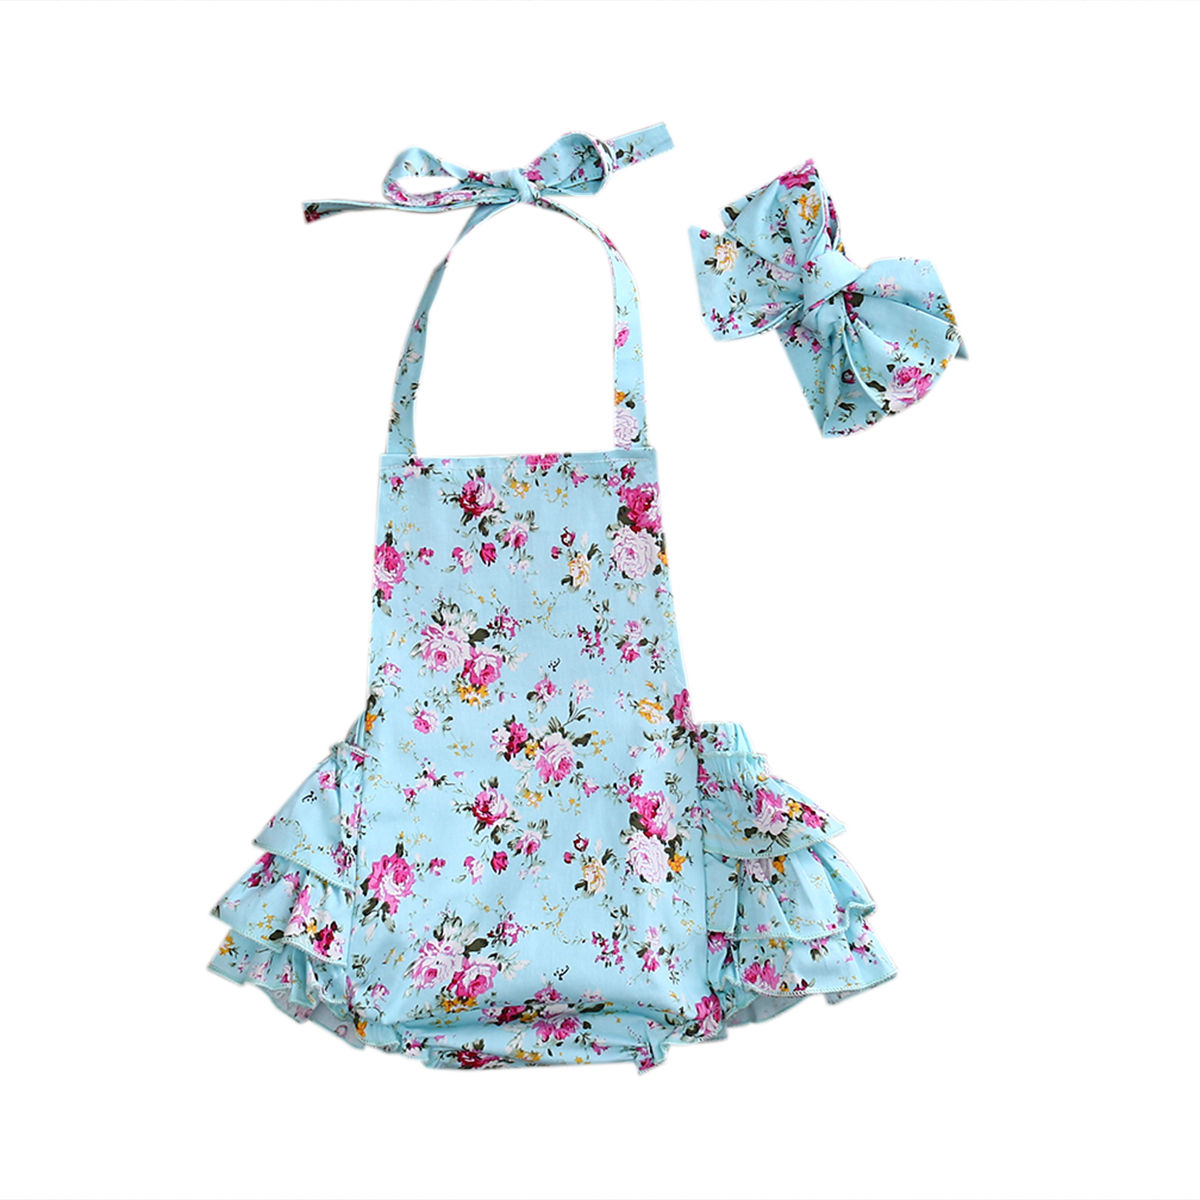 Summer Newborn Infant Baby Girls Floral Tiered Romper Jumpsuit Outfit Sunsuit Playsuit Belt Cotton Clothes newborn infant baby girl clothes strap lace floral romper jumpsuit outfit summer cotton backless one pieces outfit baby onesie page 2